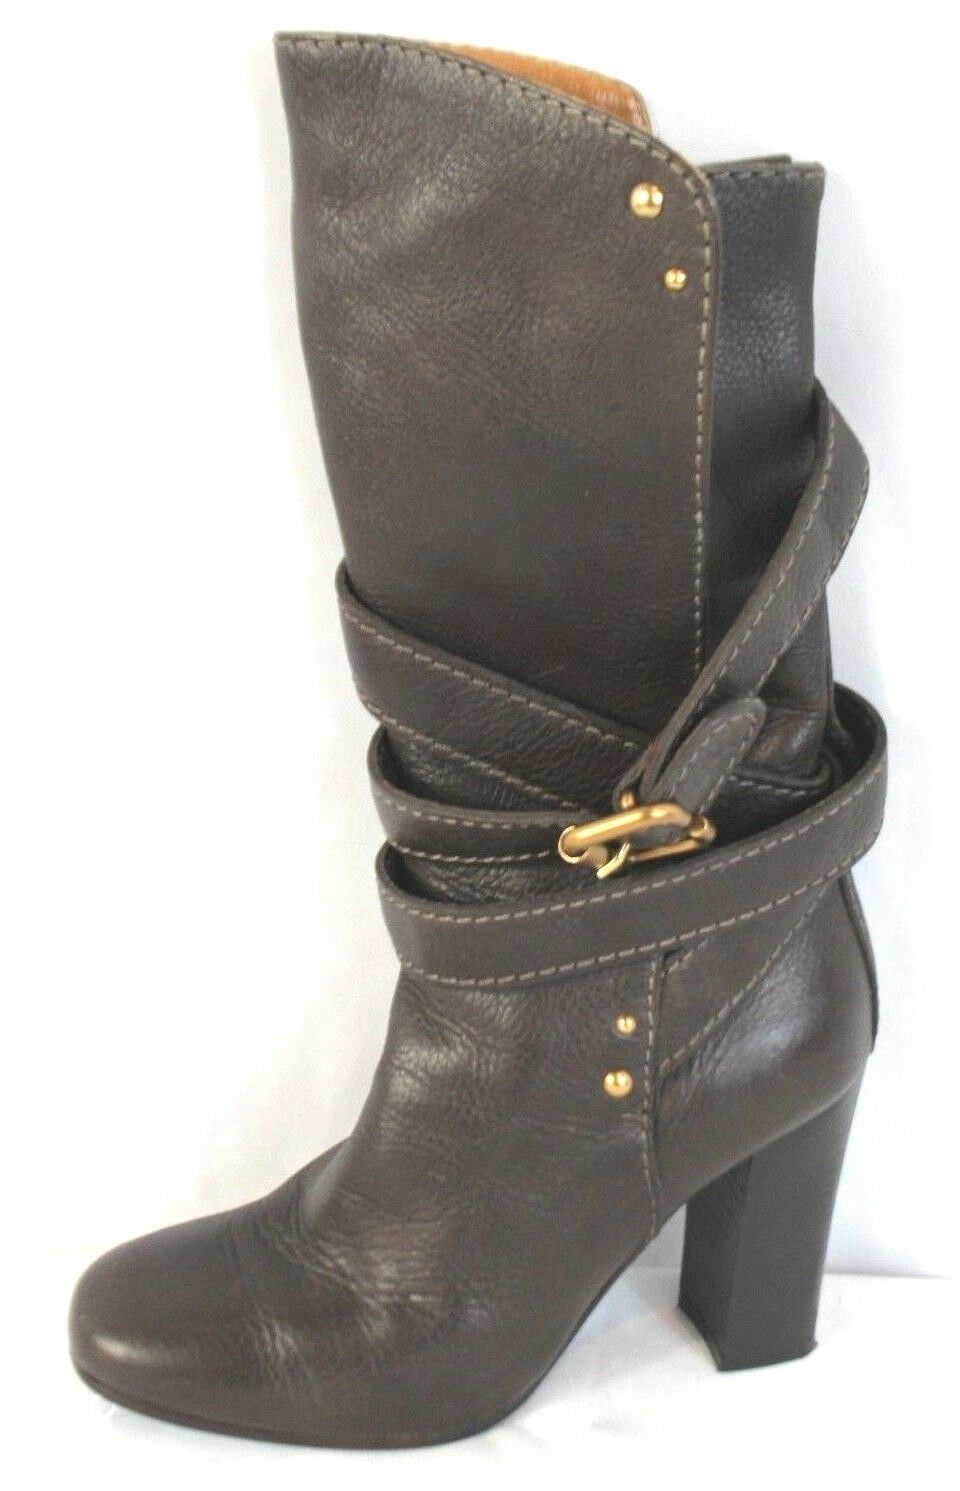 1,150 CHLOE Brown Leather Mid Calf Tall Boots Wrap Around Buckle Heels Sz 36.5